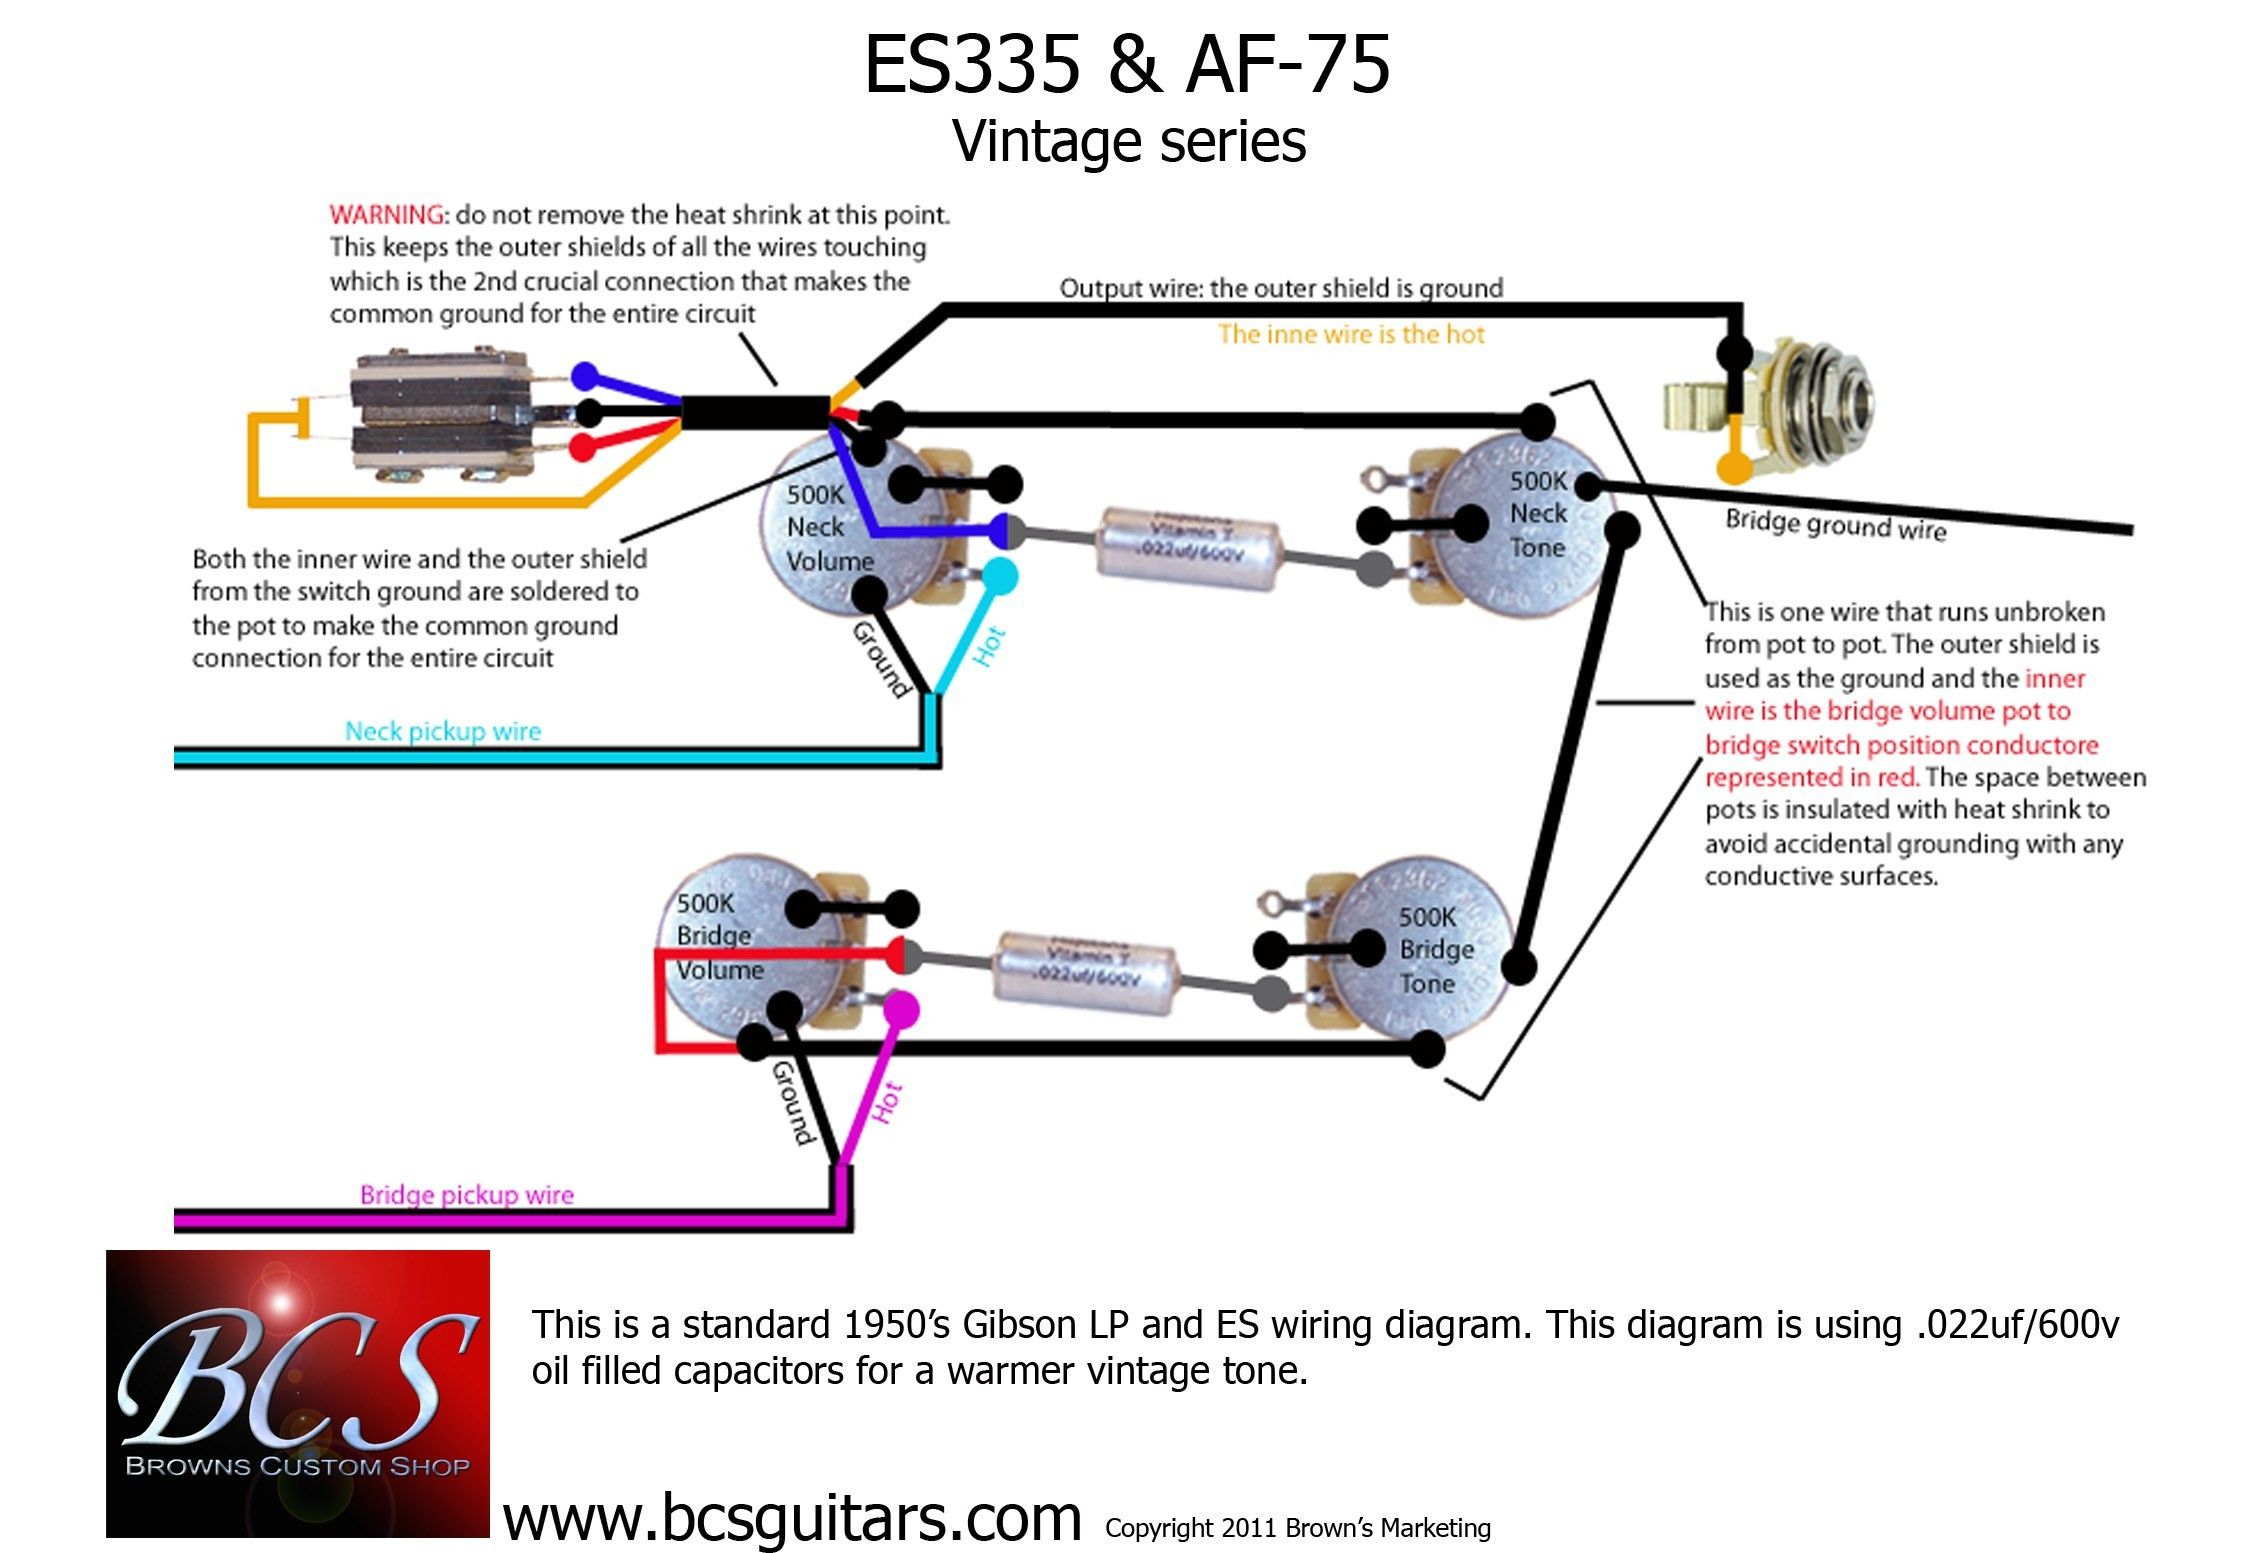 [SCHEMATICS_48IU]  164A34 Epiphone Dot Guitar Wiring Diagram | Wiring Library | Ovation Wiring Harness |  | Wiring Library